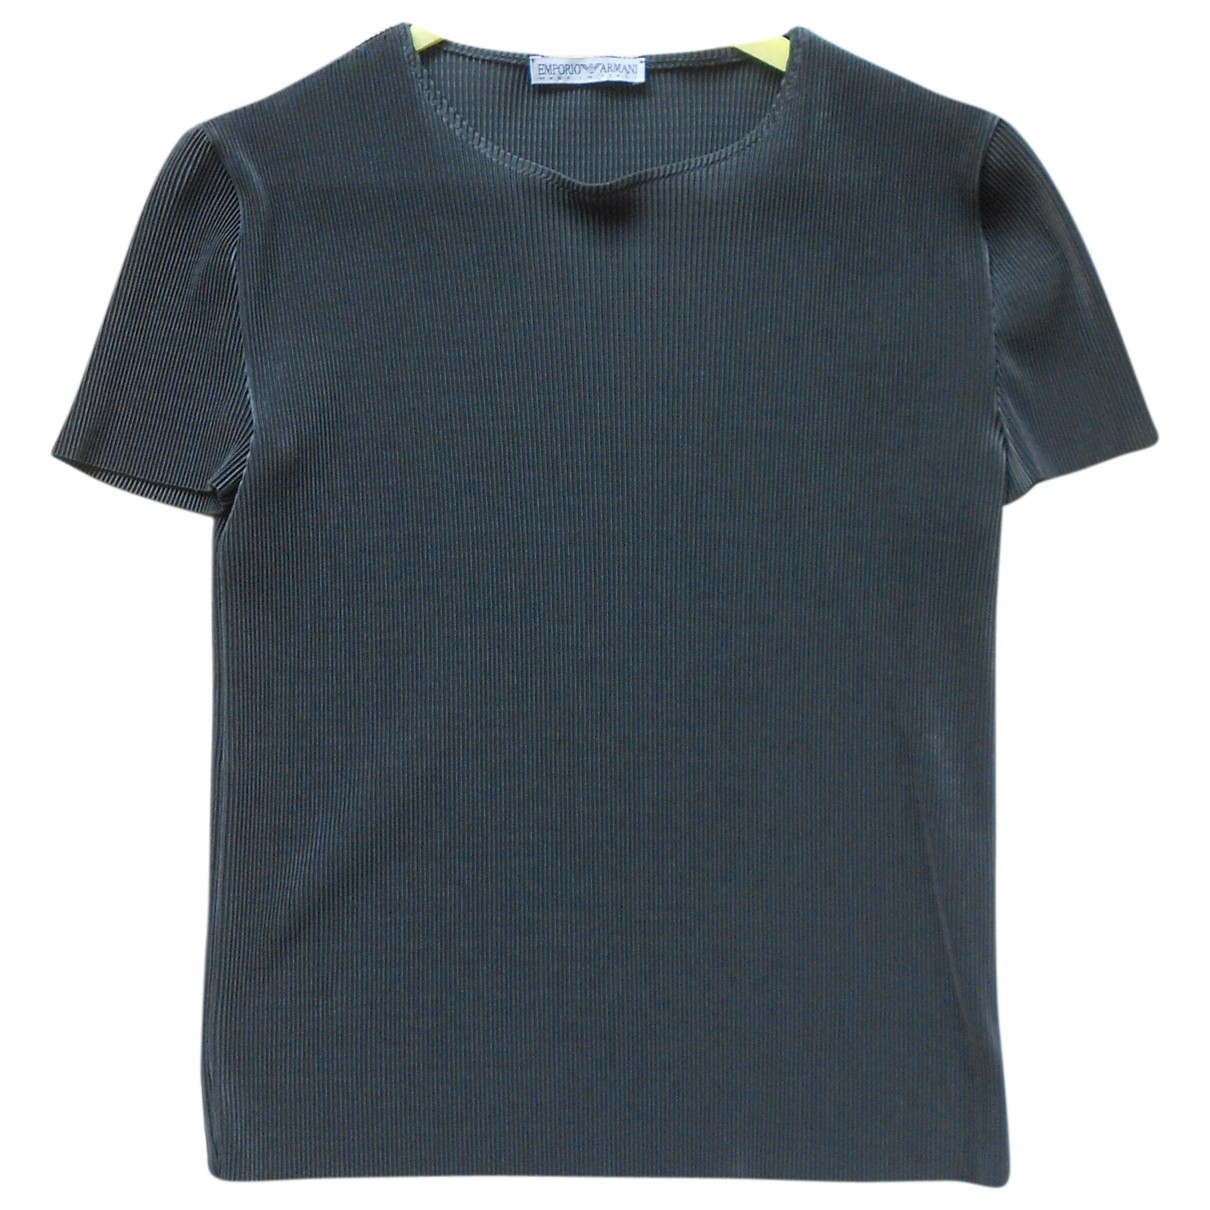 Emporio Armani \N Anthracite  top for Women 38 FR